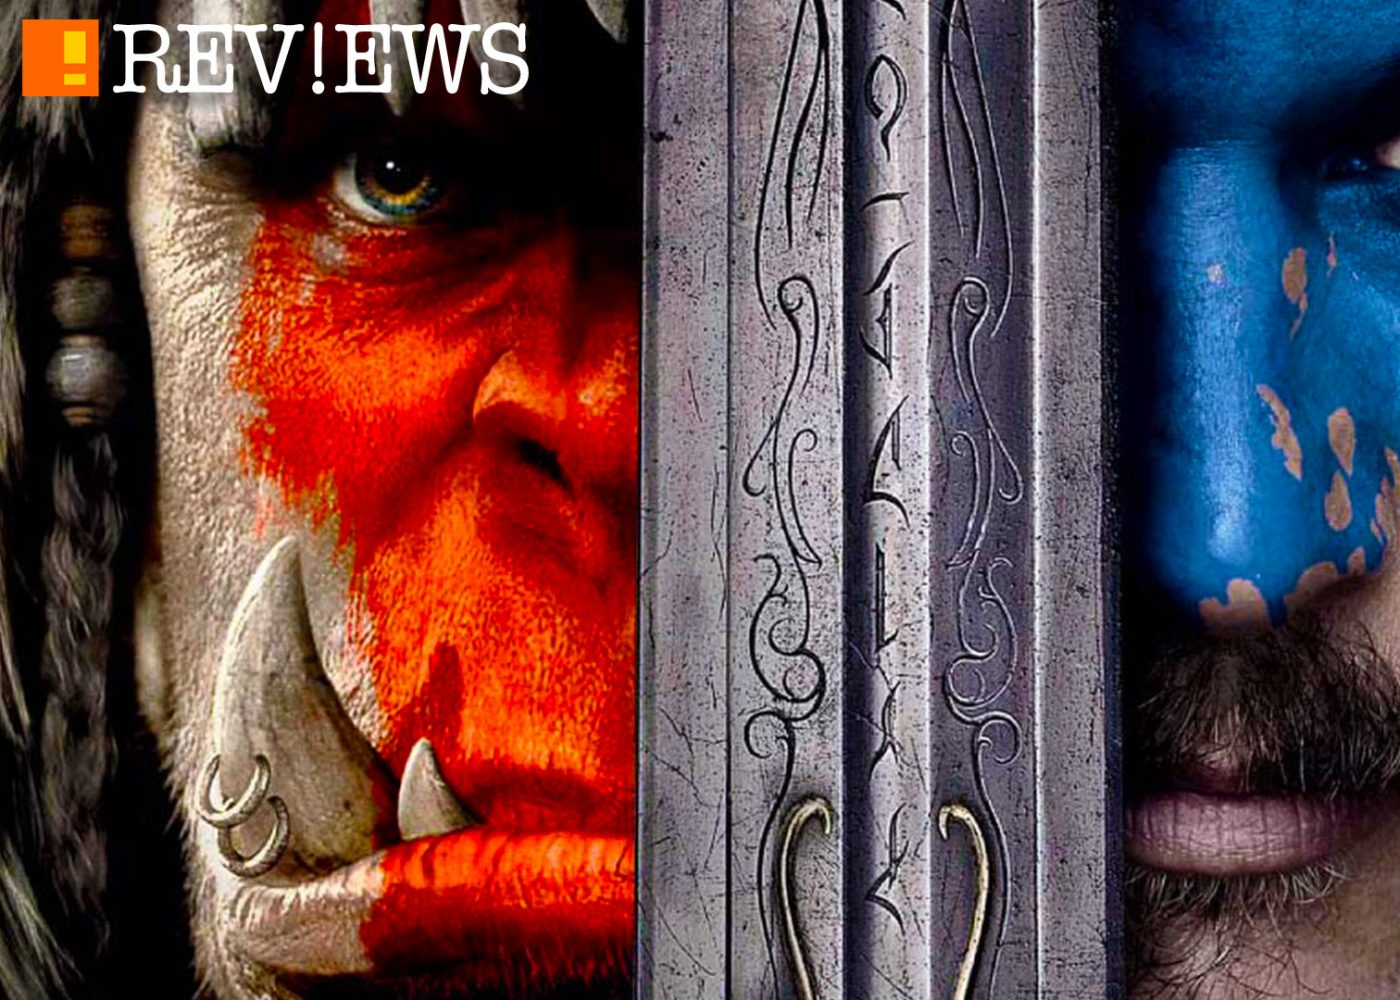 tap reviews, warcraft, blackhand, THE ACTION PIXEL,entertainment on tap, world of warcraft, blizzard entertainment, legendary,wrynn,duncan jones